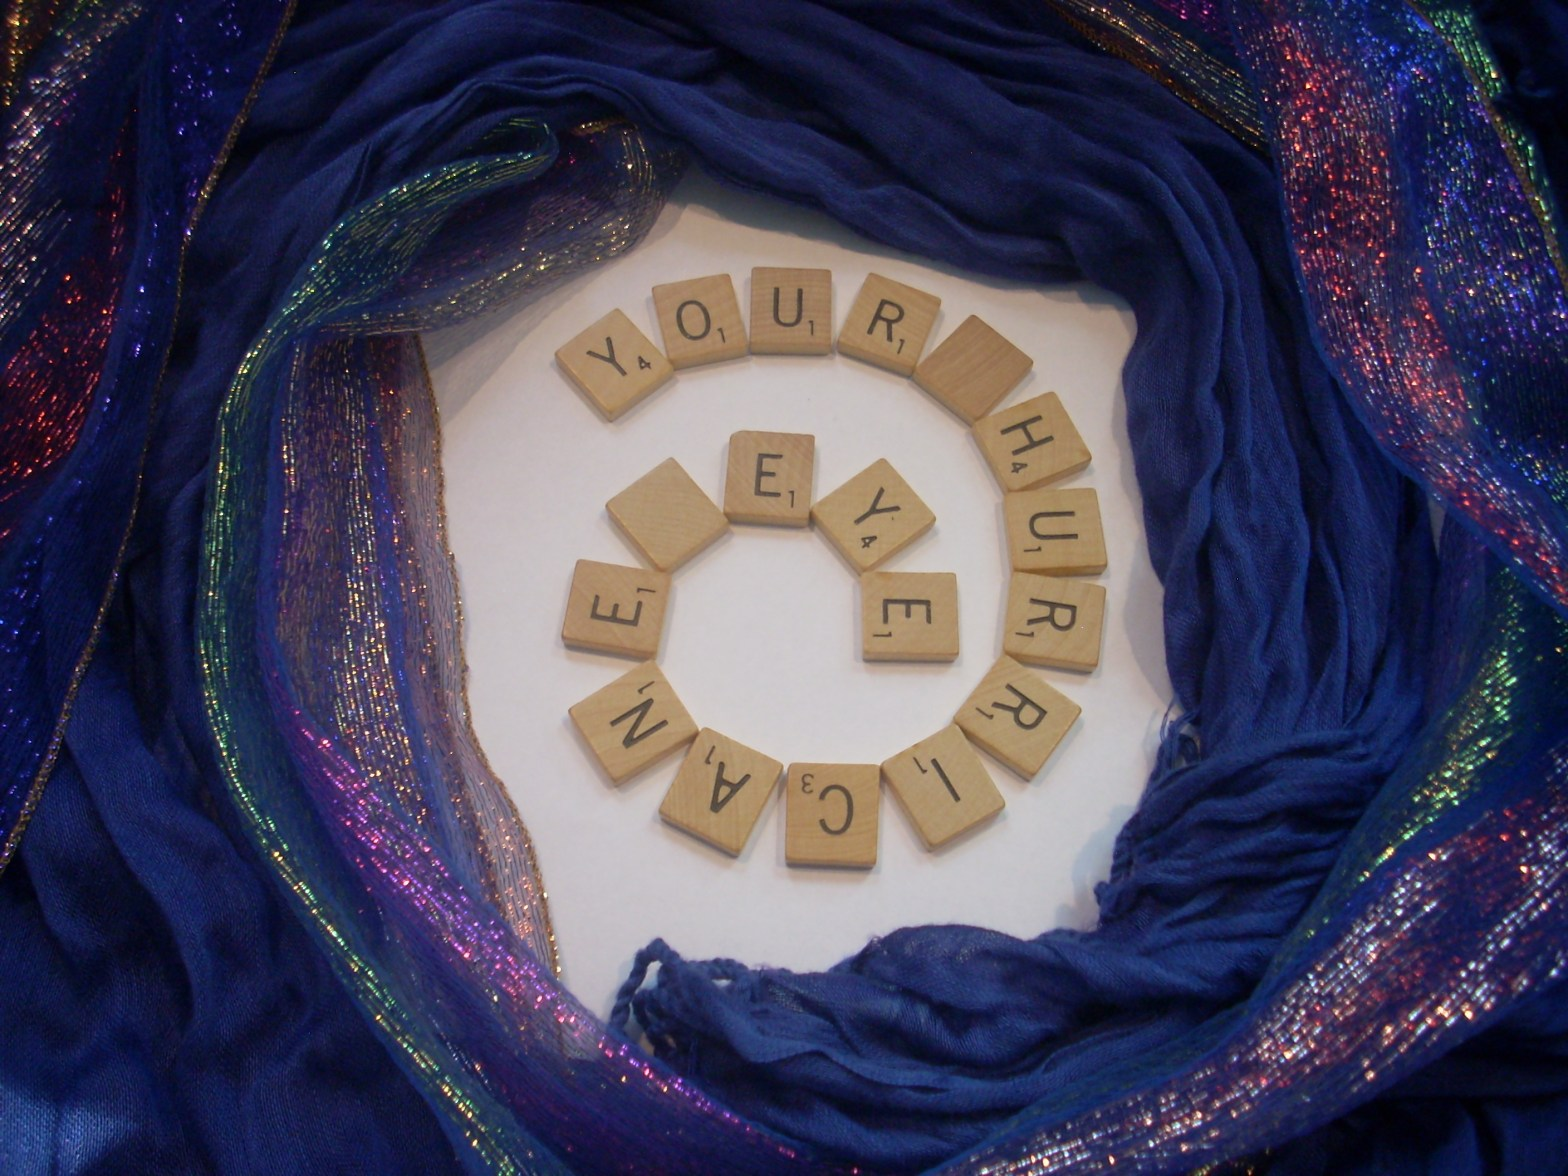 Title in Scrabble Tiles: Your Hurricane Eye, positioned in a circular formation as a hurricane